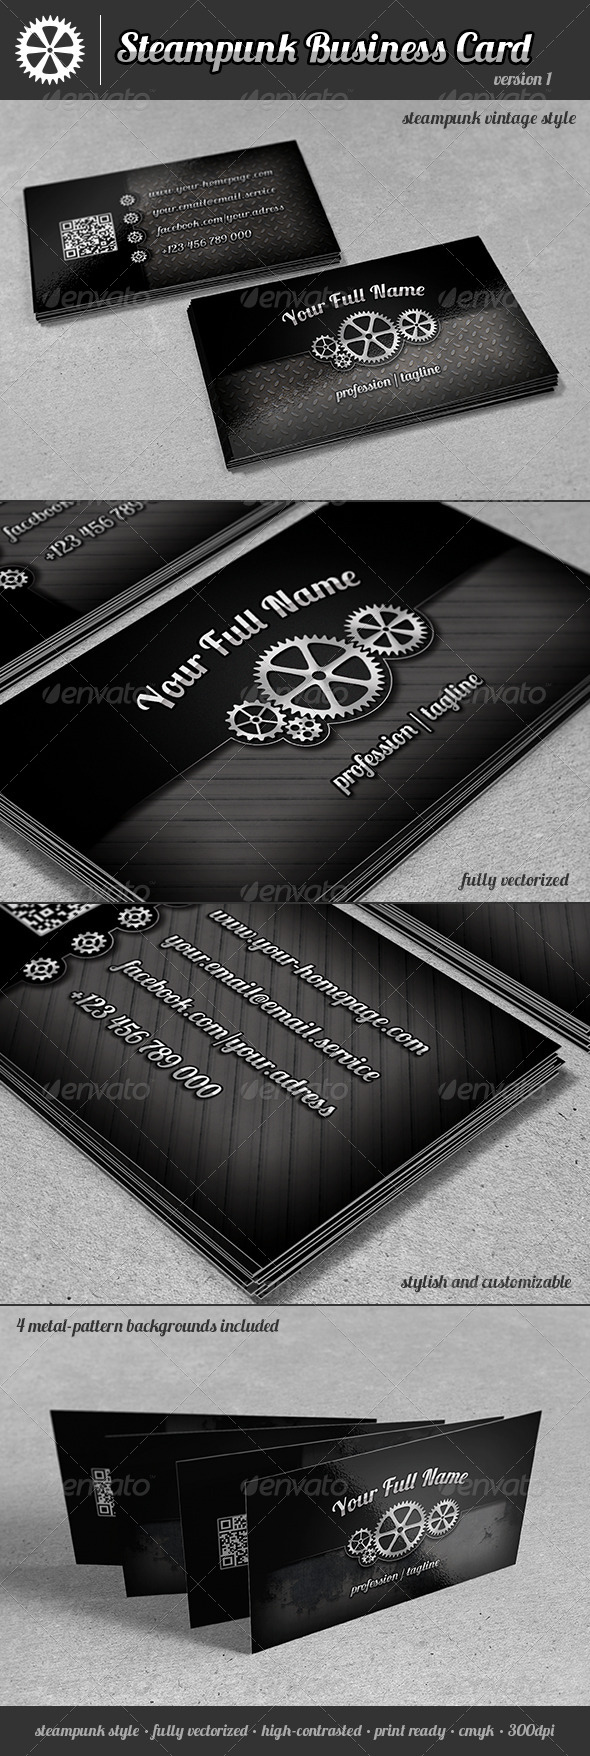 GraphicRiver Steampunk Business Card 5971795